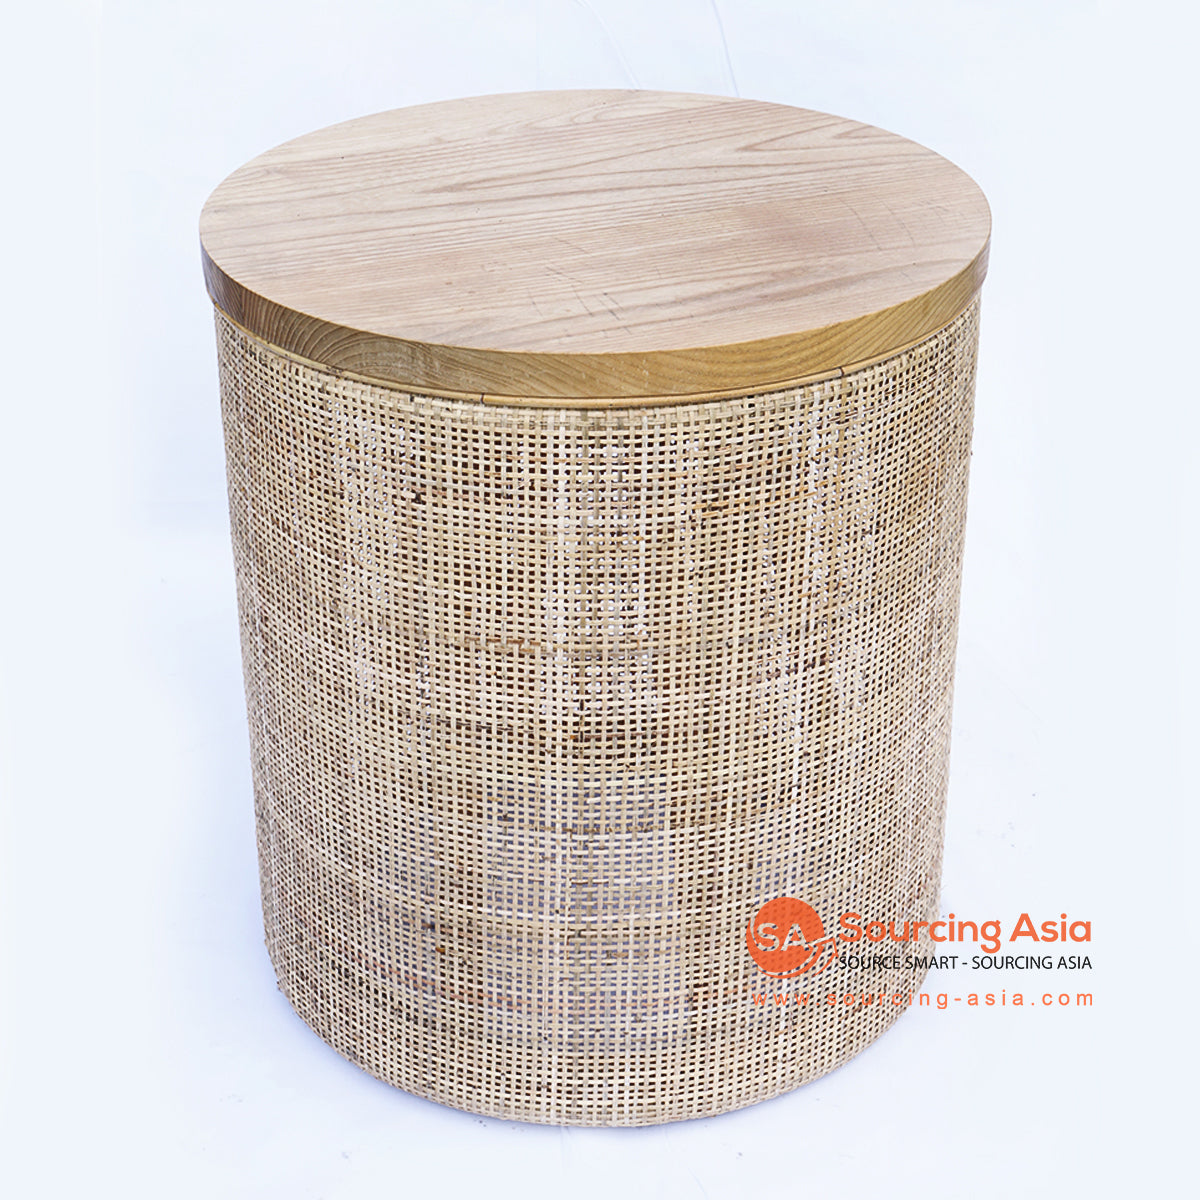 BNTC006-4 RATTAN WOVEN SIDE TABLE WOODEN TOP